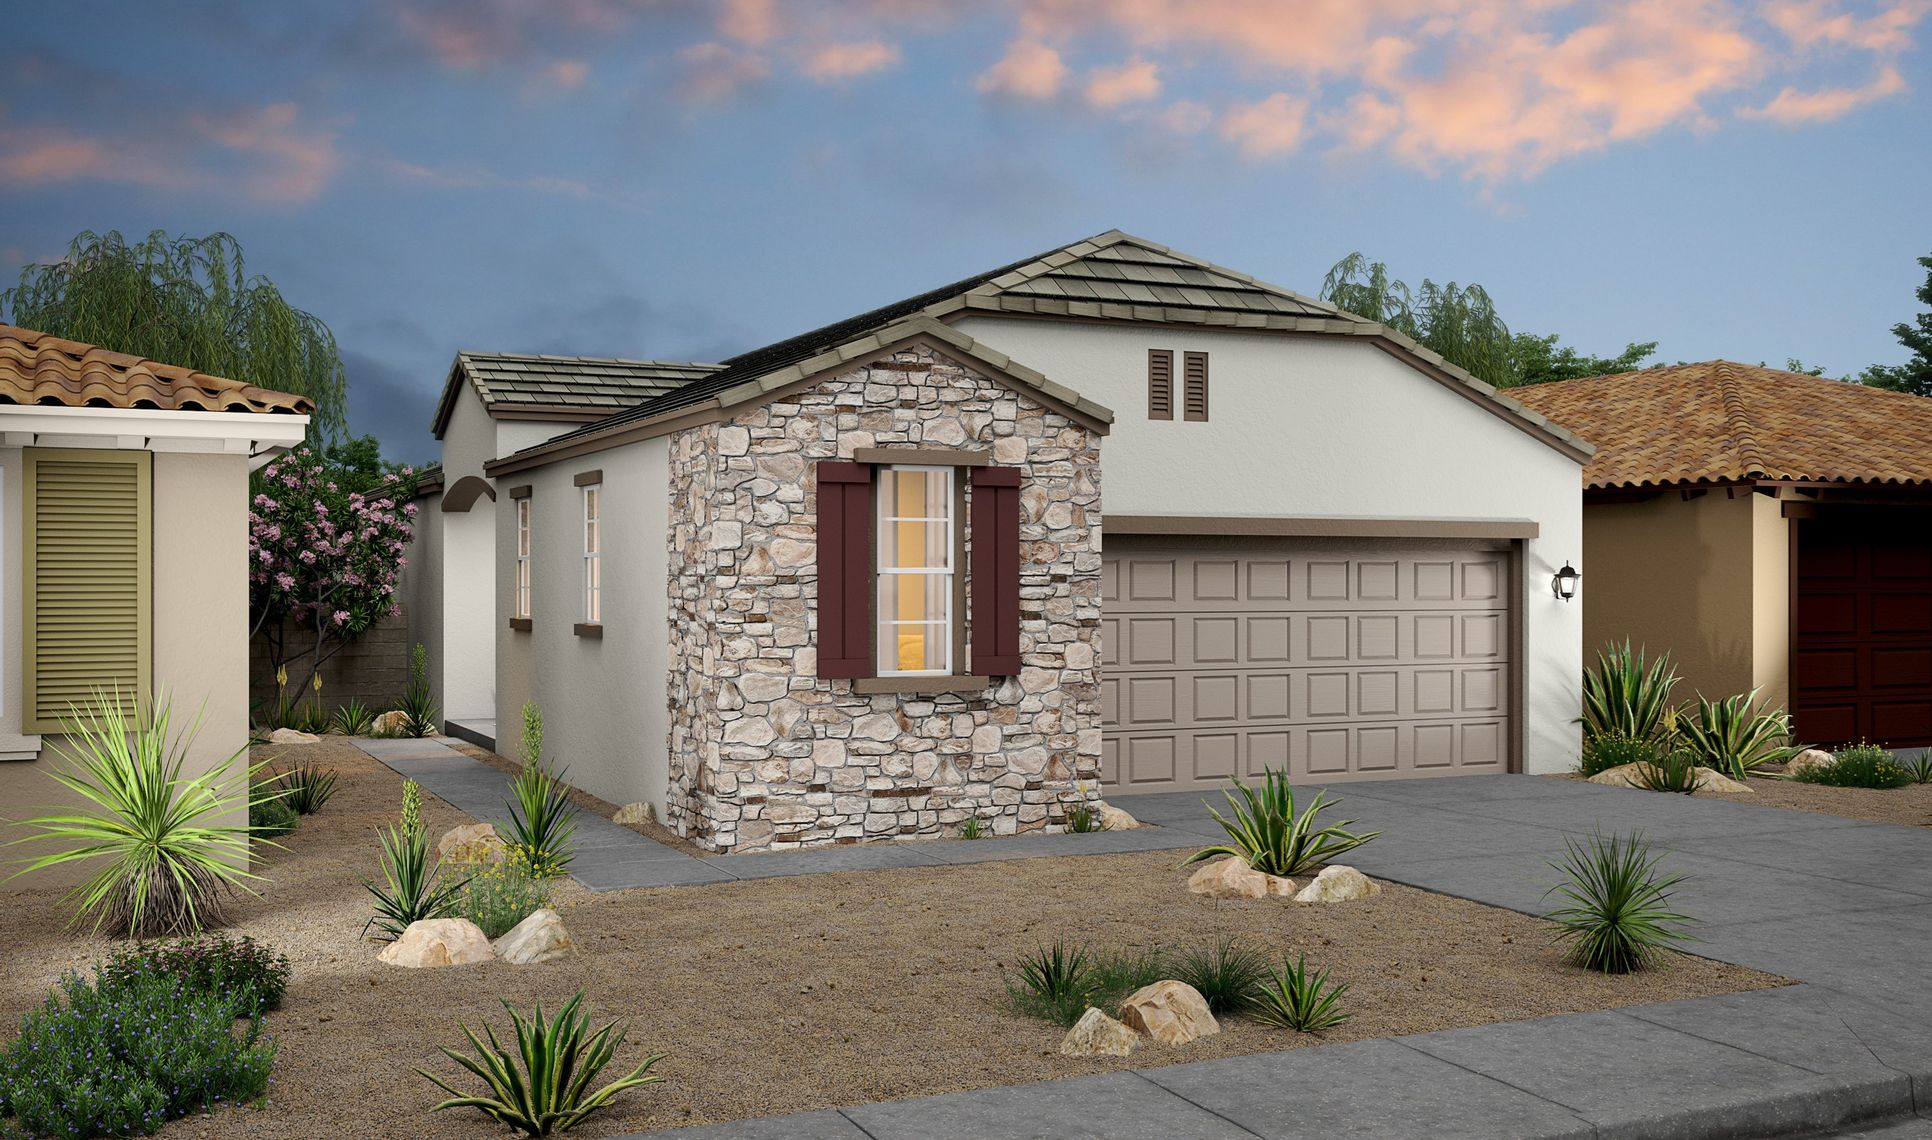 Exterior:Prickly Pear Cottage B